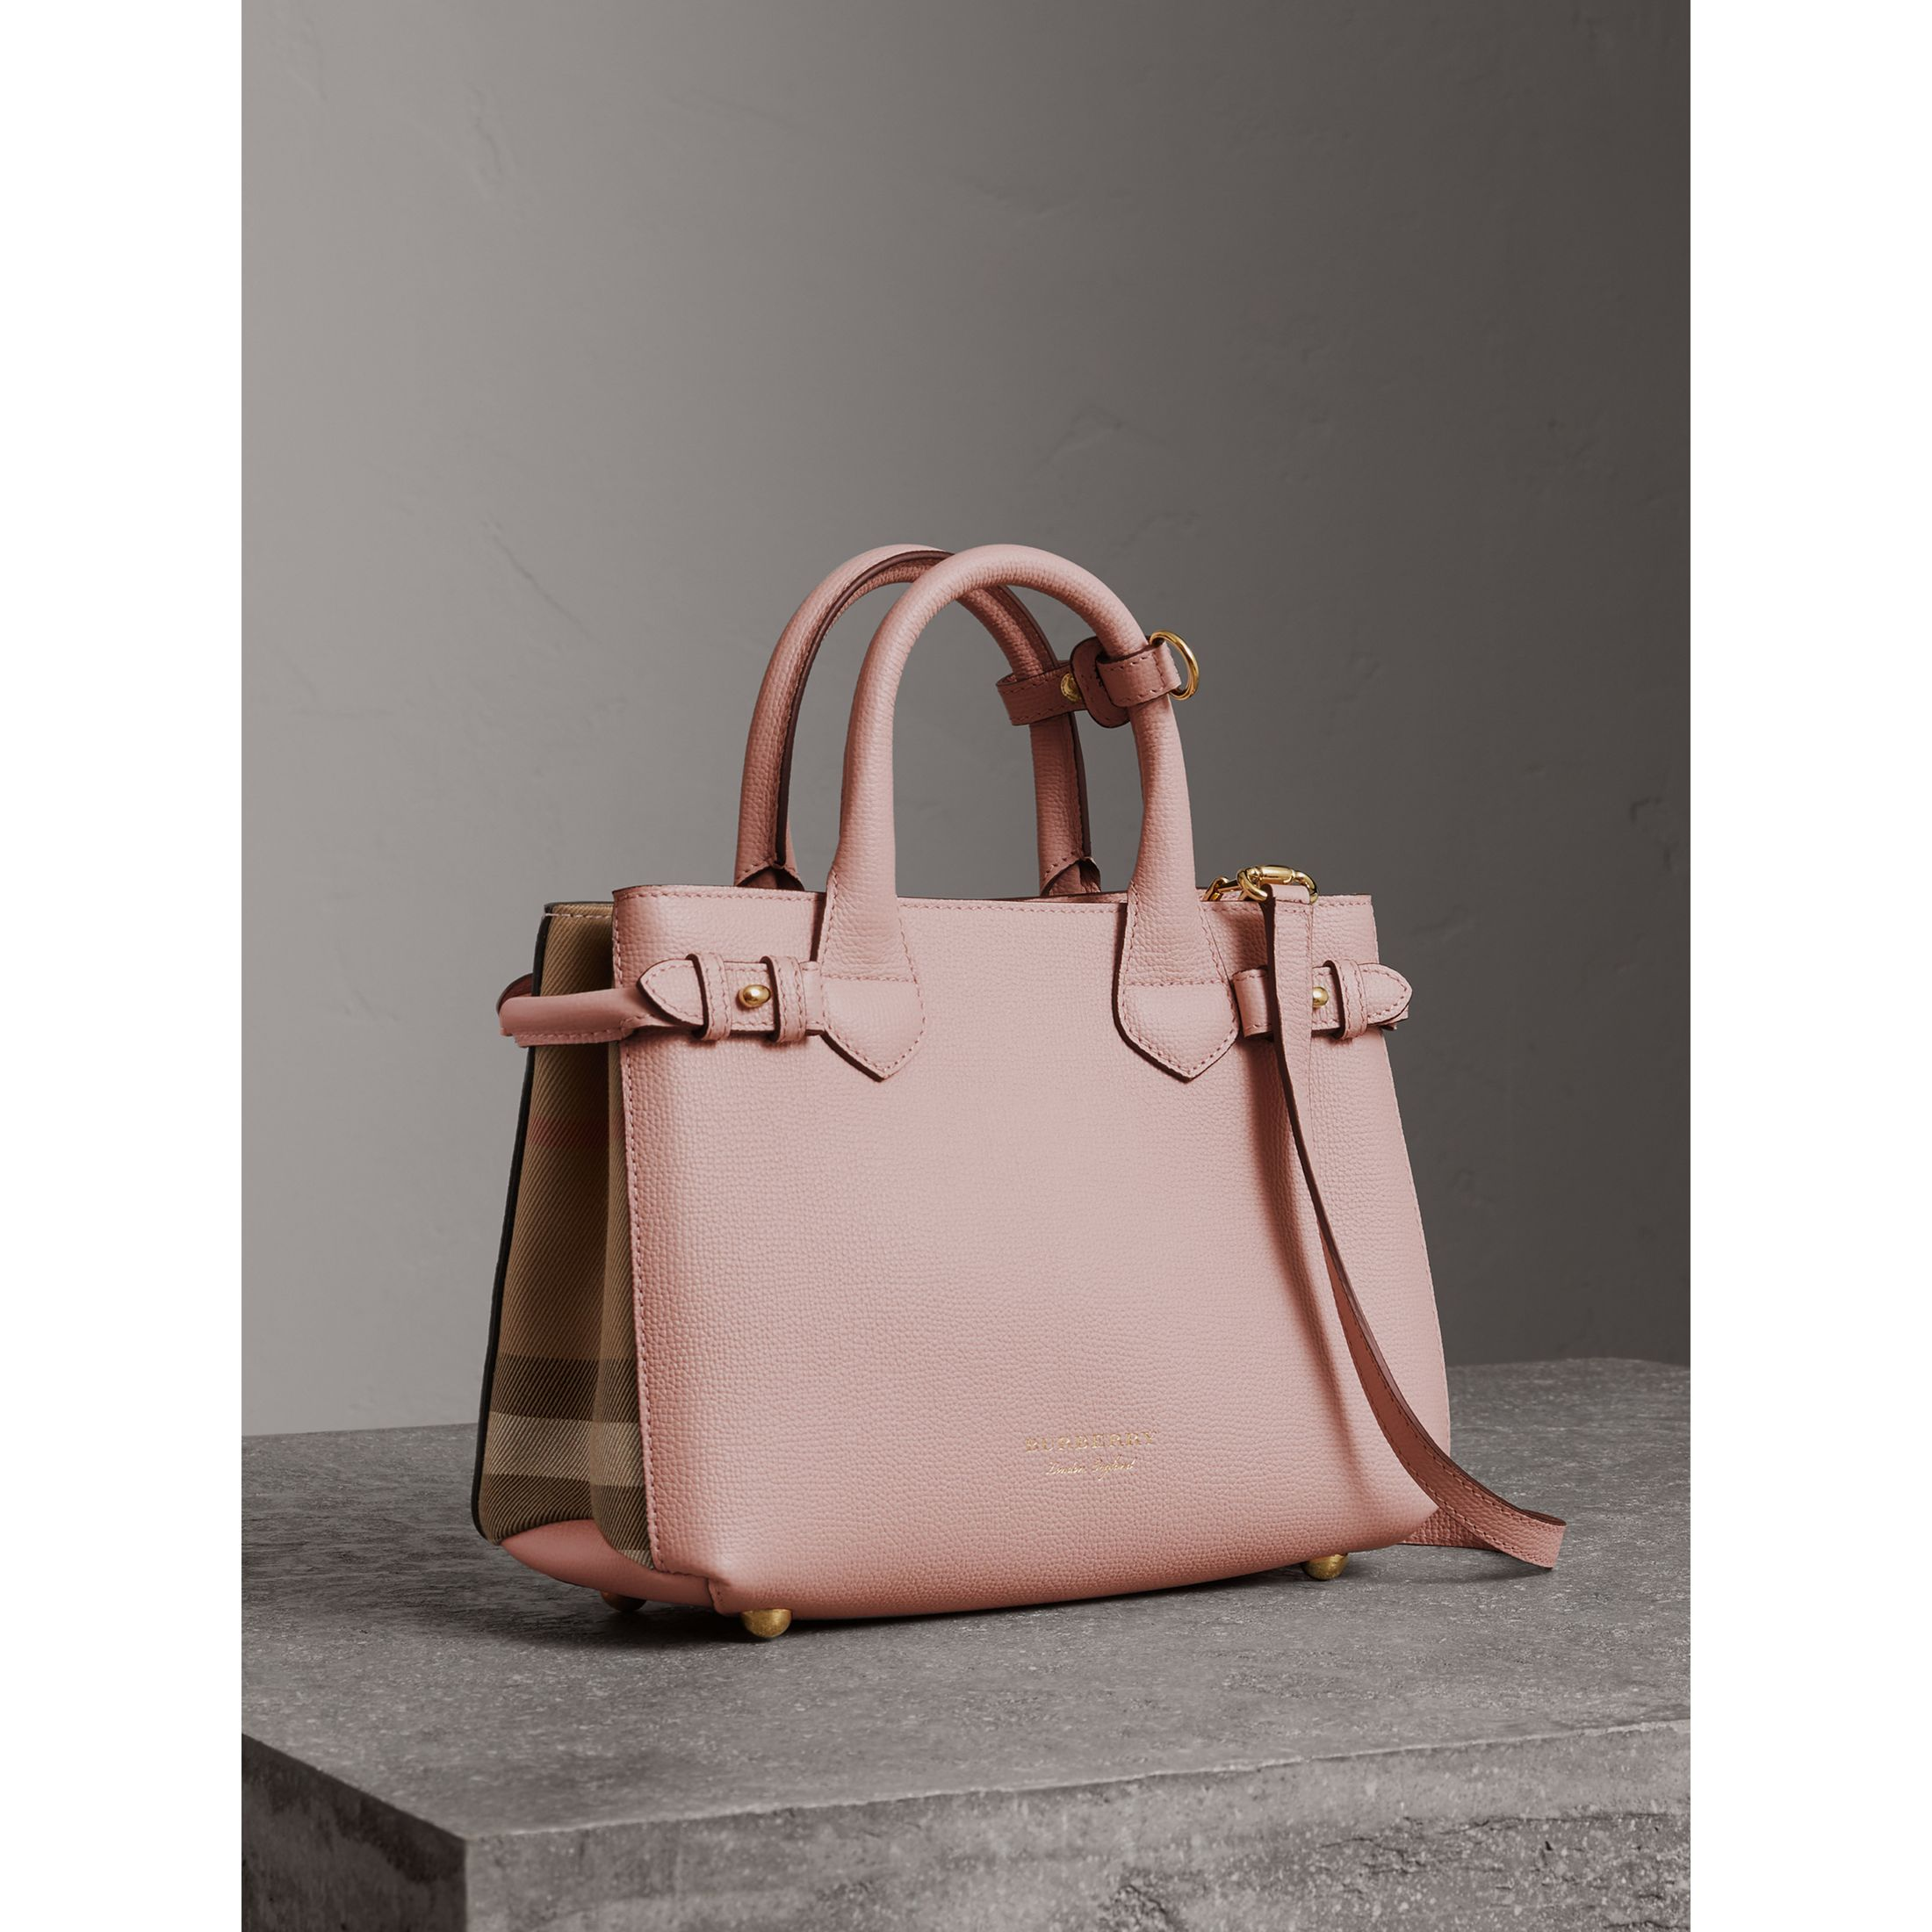 Gorgeous pink Burberry satchel